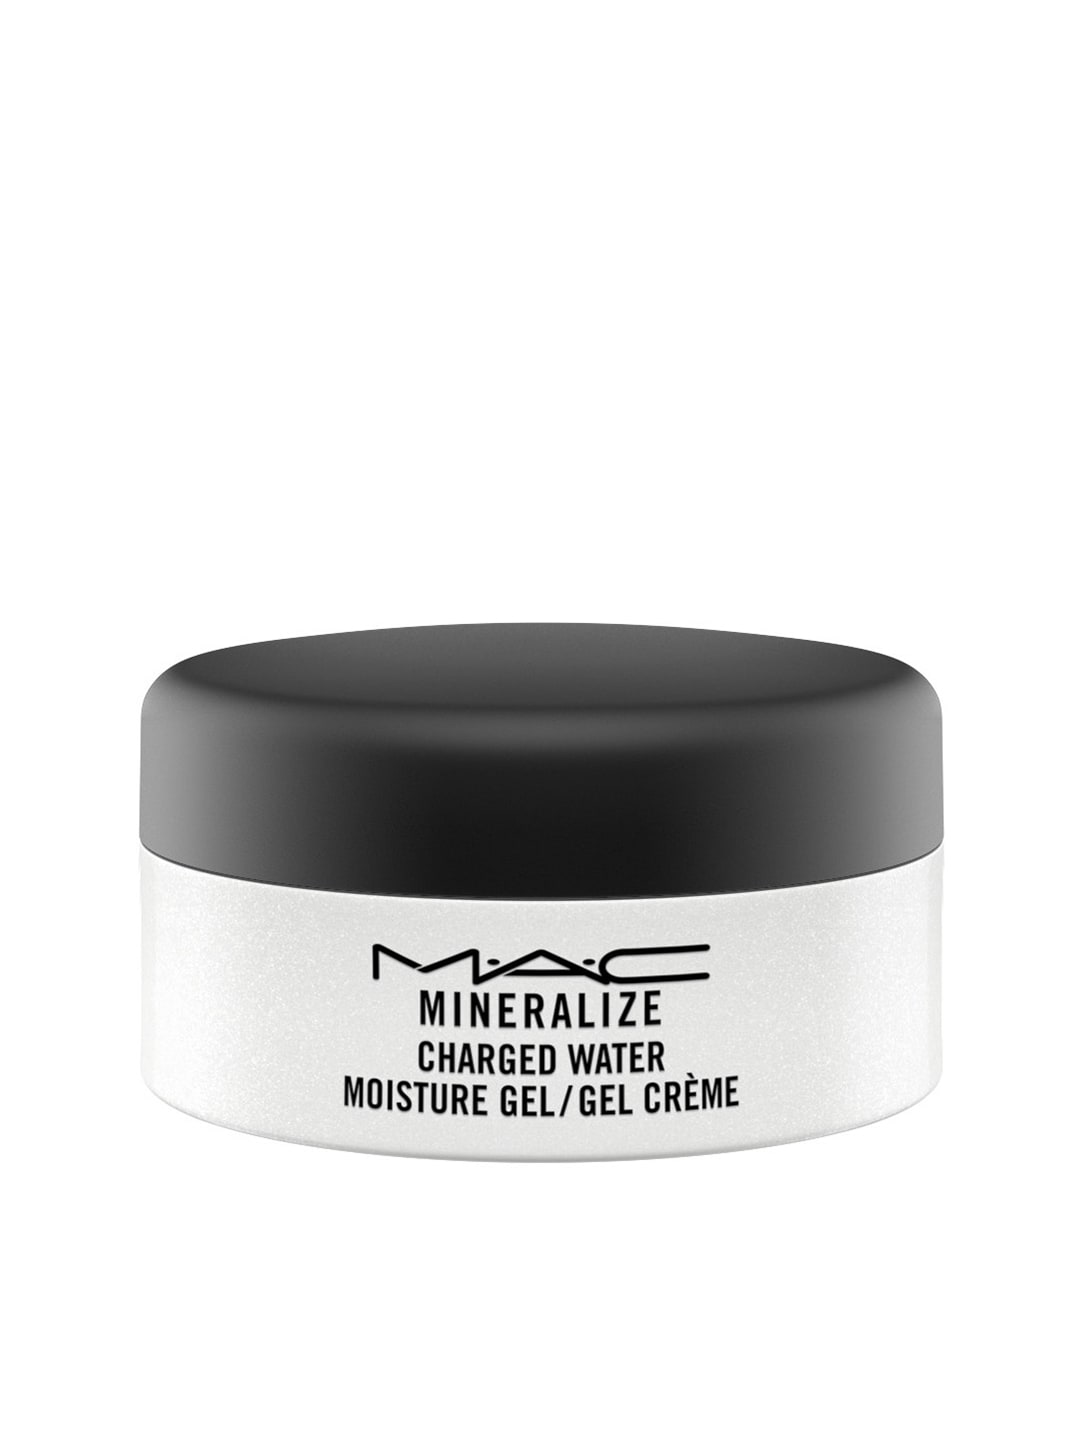 M.A.C Mineralize Charged Water Moisture Gel image